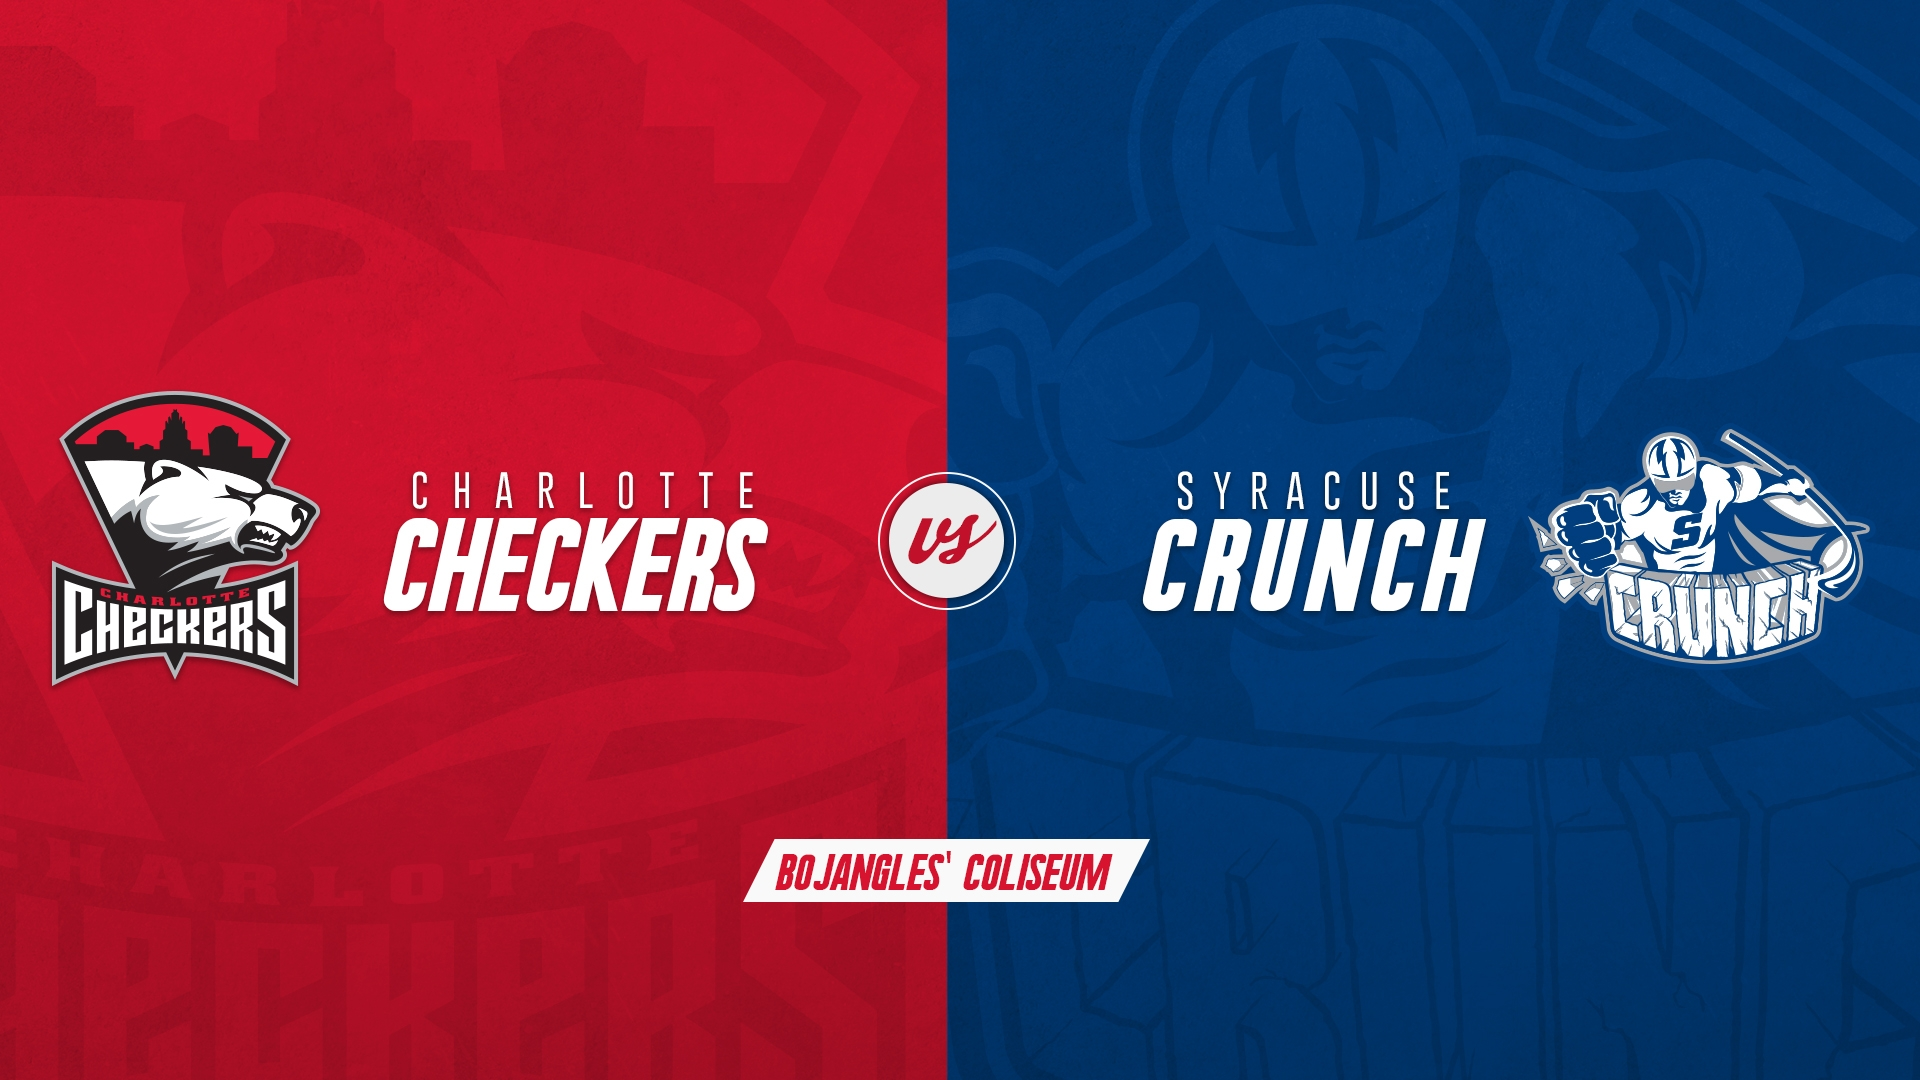 Charlotte Checkers vs. Syracuse Crunch